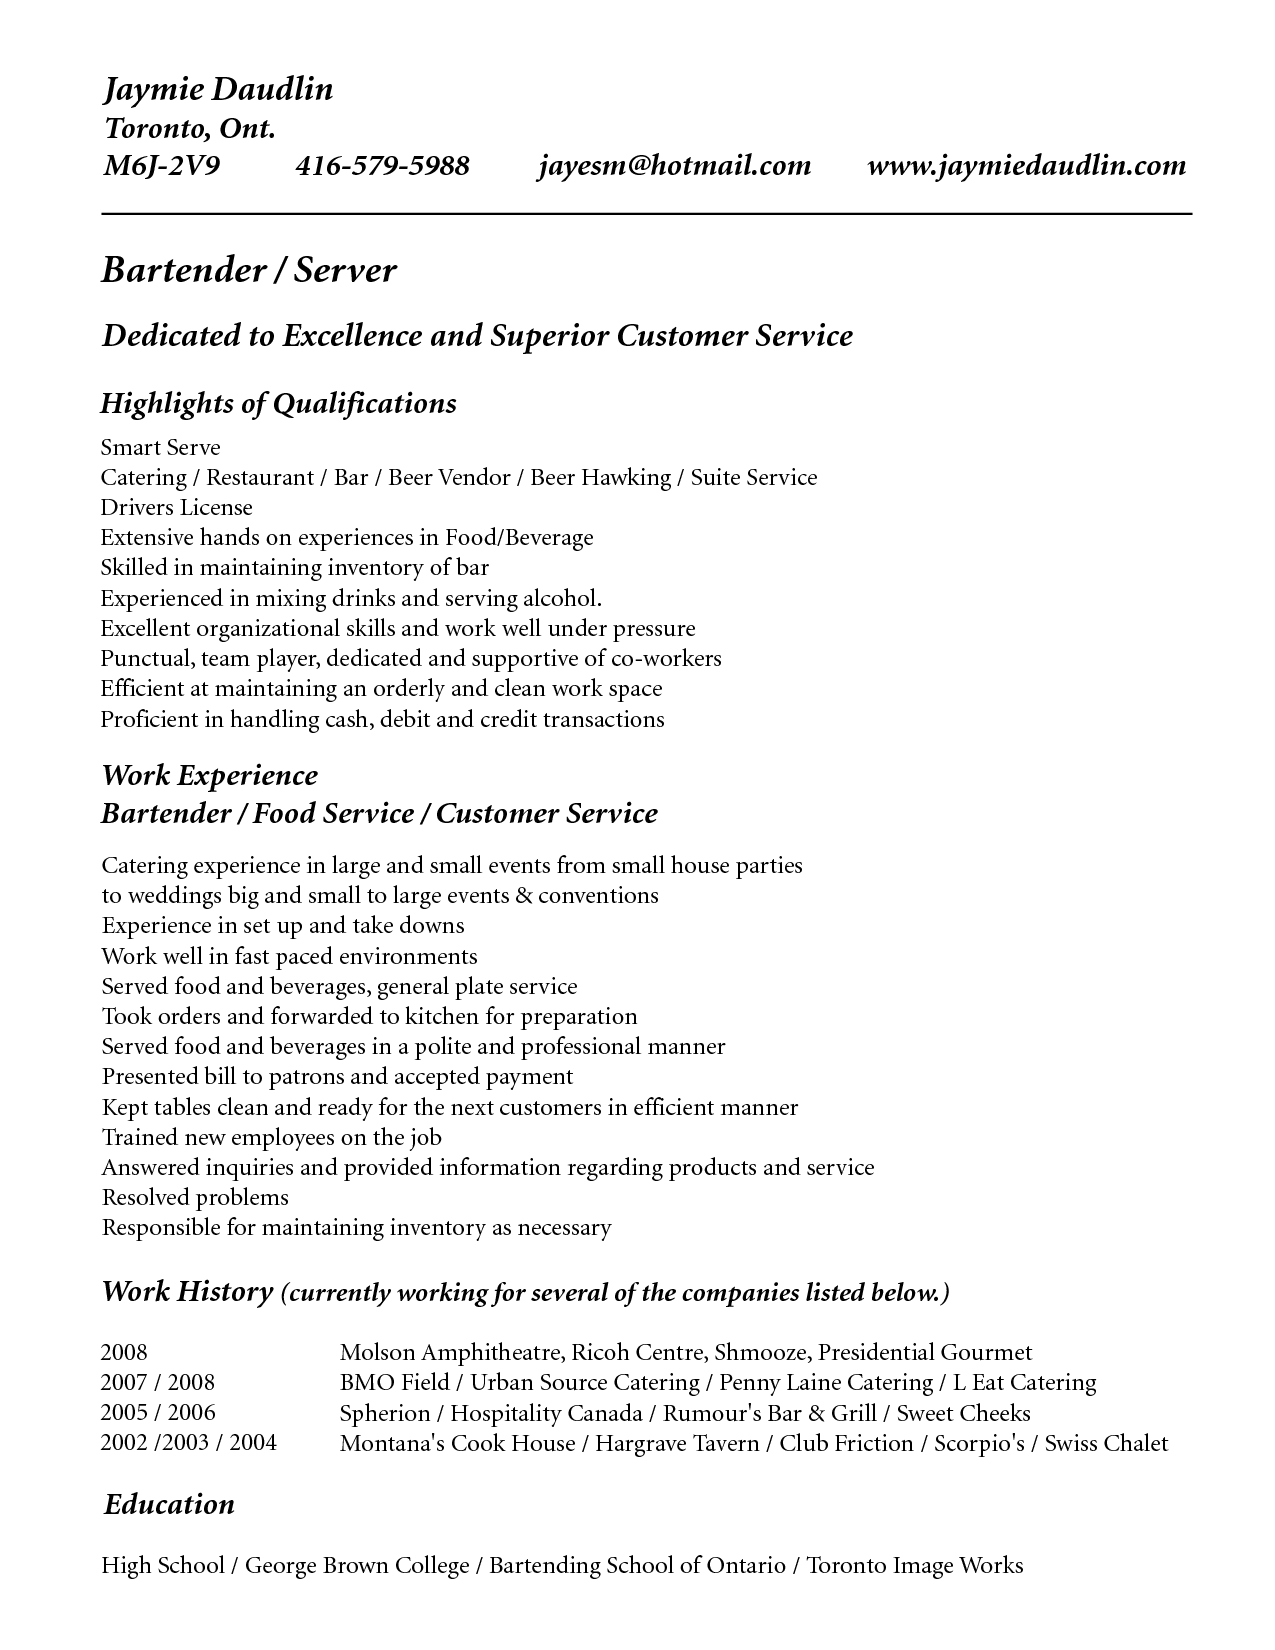 Restaurant Resume Sample Resume Template For Bartender No Experience  Httpwww